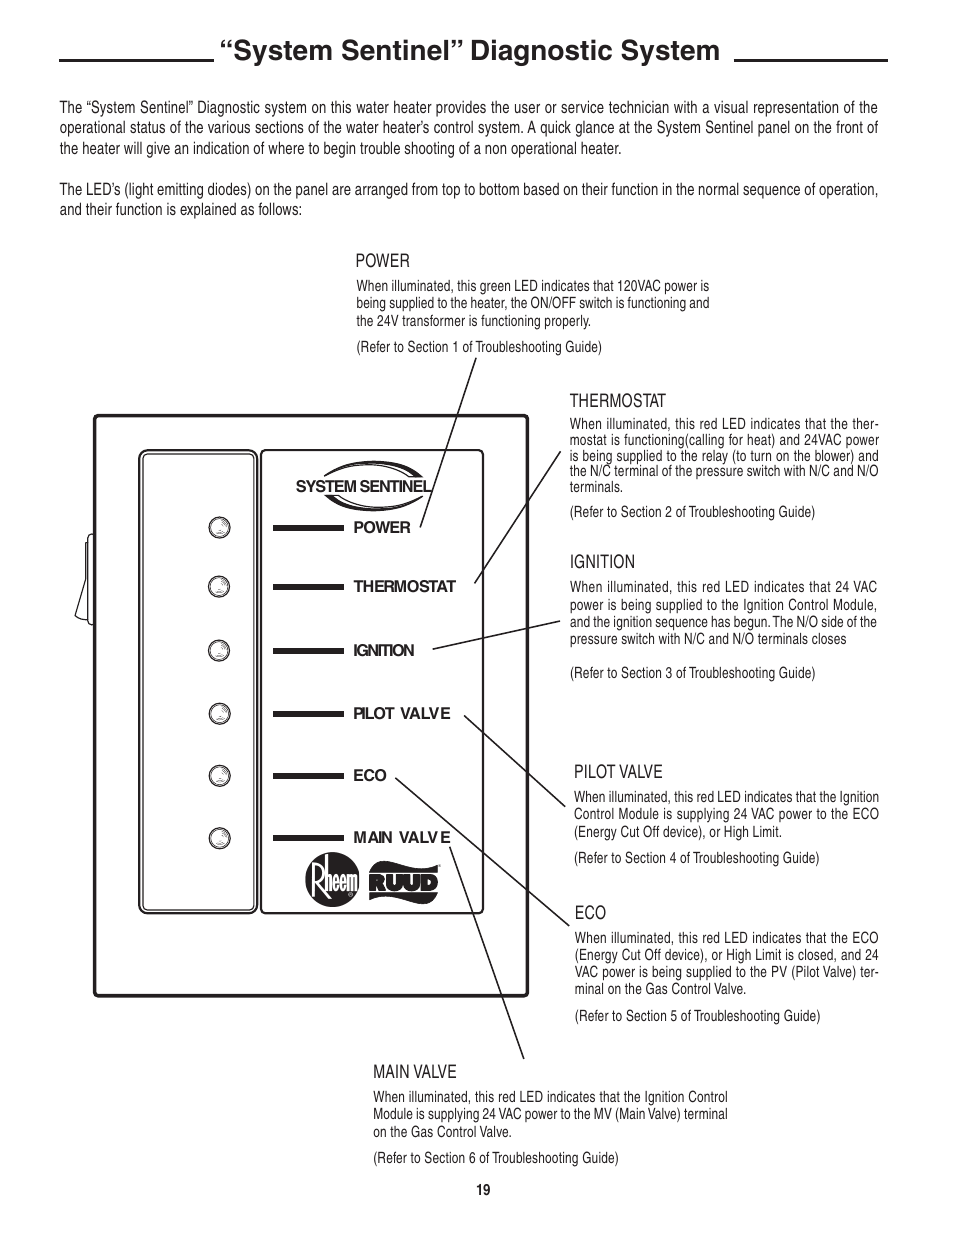 """System sentinel"""" diagnostic system   Rheem Commercial Power Direct Vent  Water heater User Manual   Page 19 / 28"""